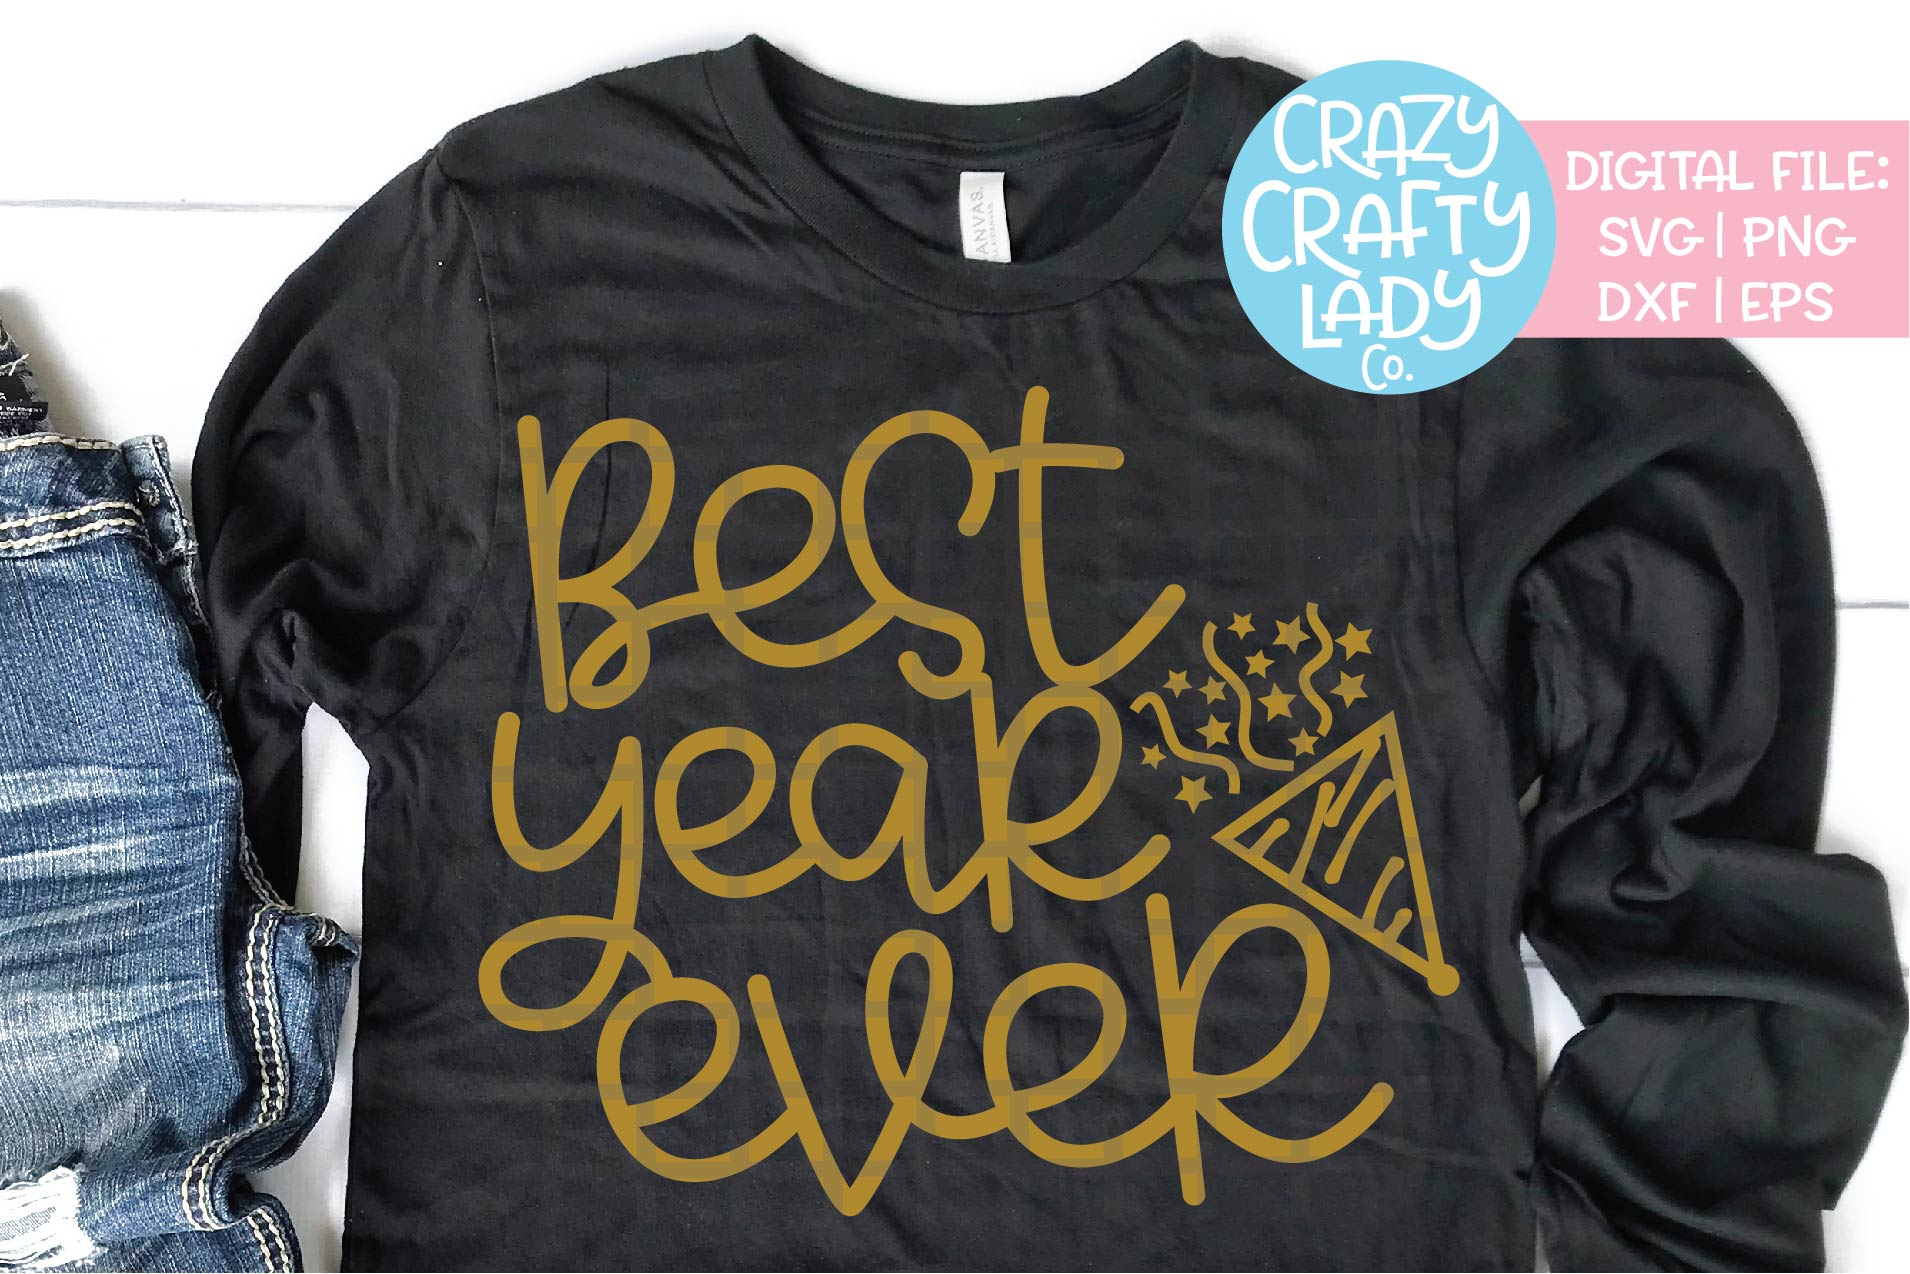 Best Year Ever SVG DXF EPS PNG Cut File example image 1